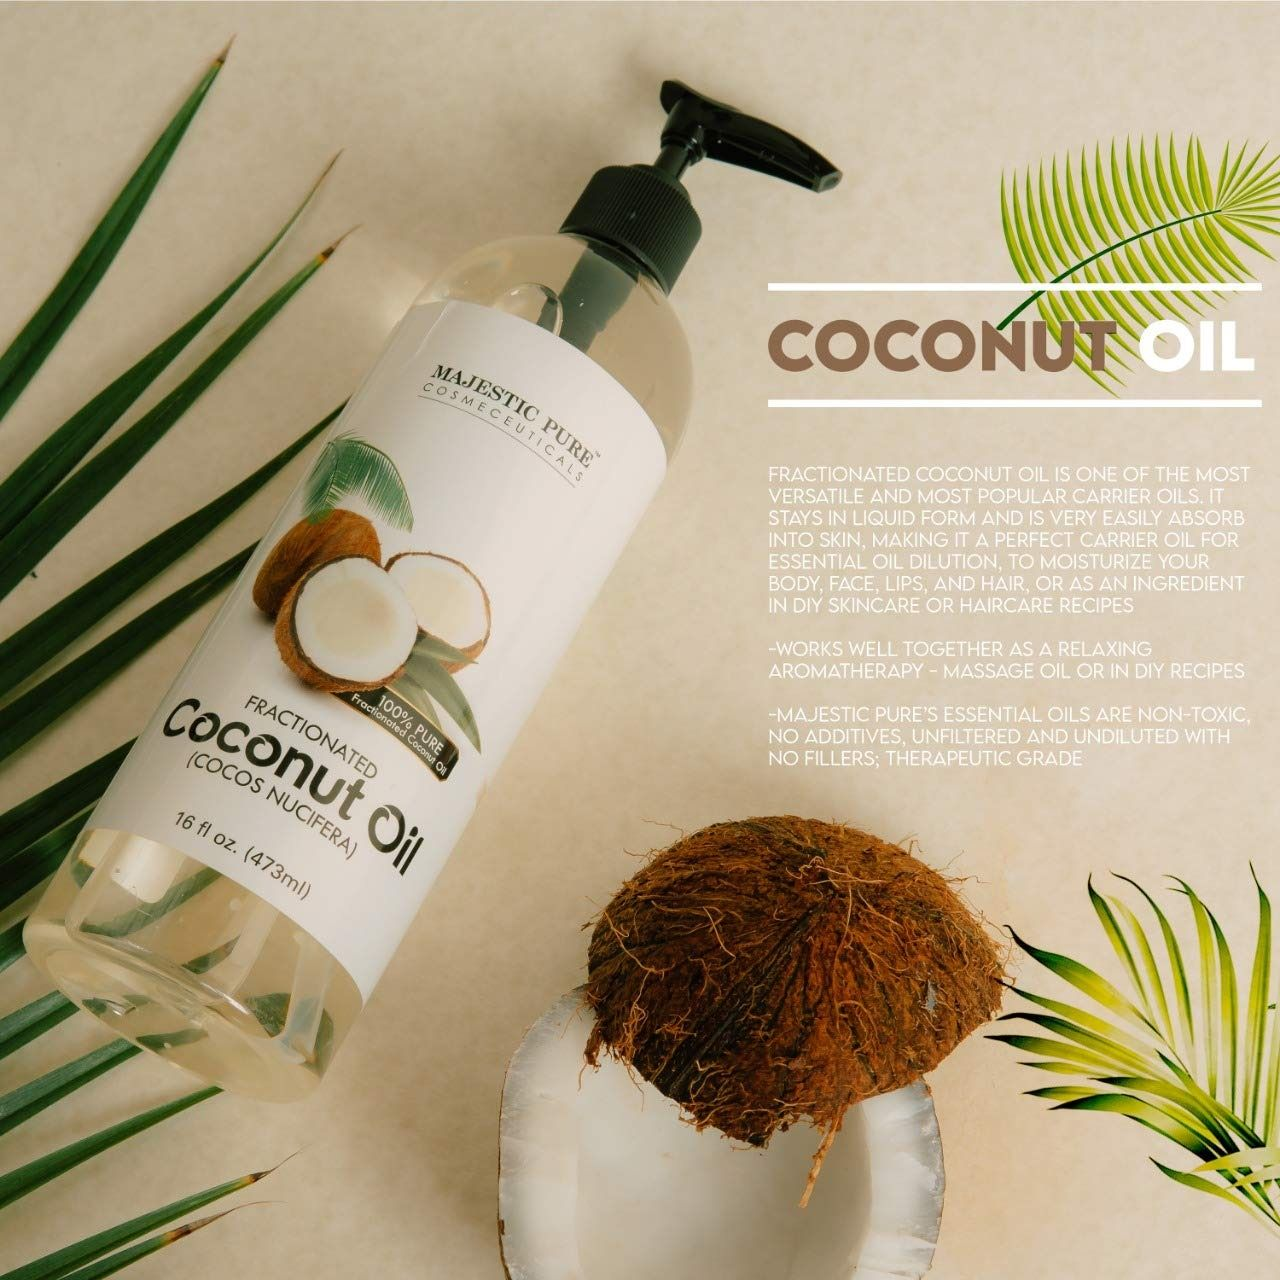 Majestic Pure Fractionated Coconut Oil For Aromatherapy Relaxing Massage Carrier Oil For Diluting In 2021 Aromatherapy Massage Oils Coconut Shampoo Diy Skin Care